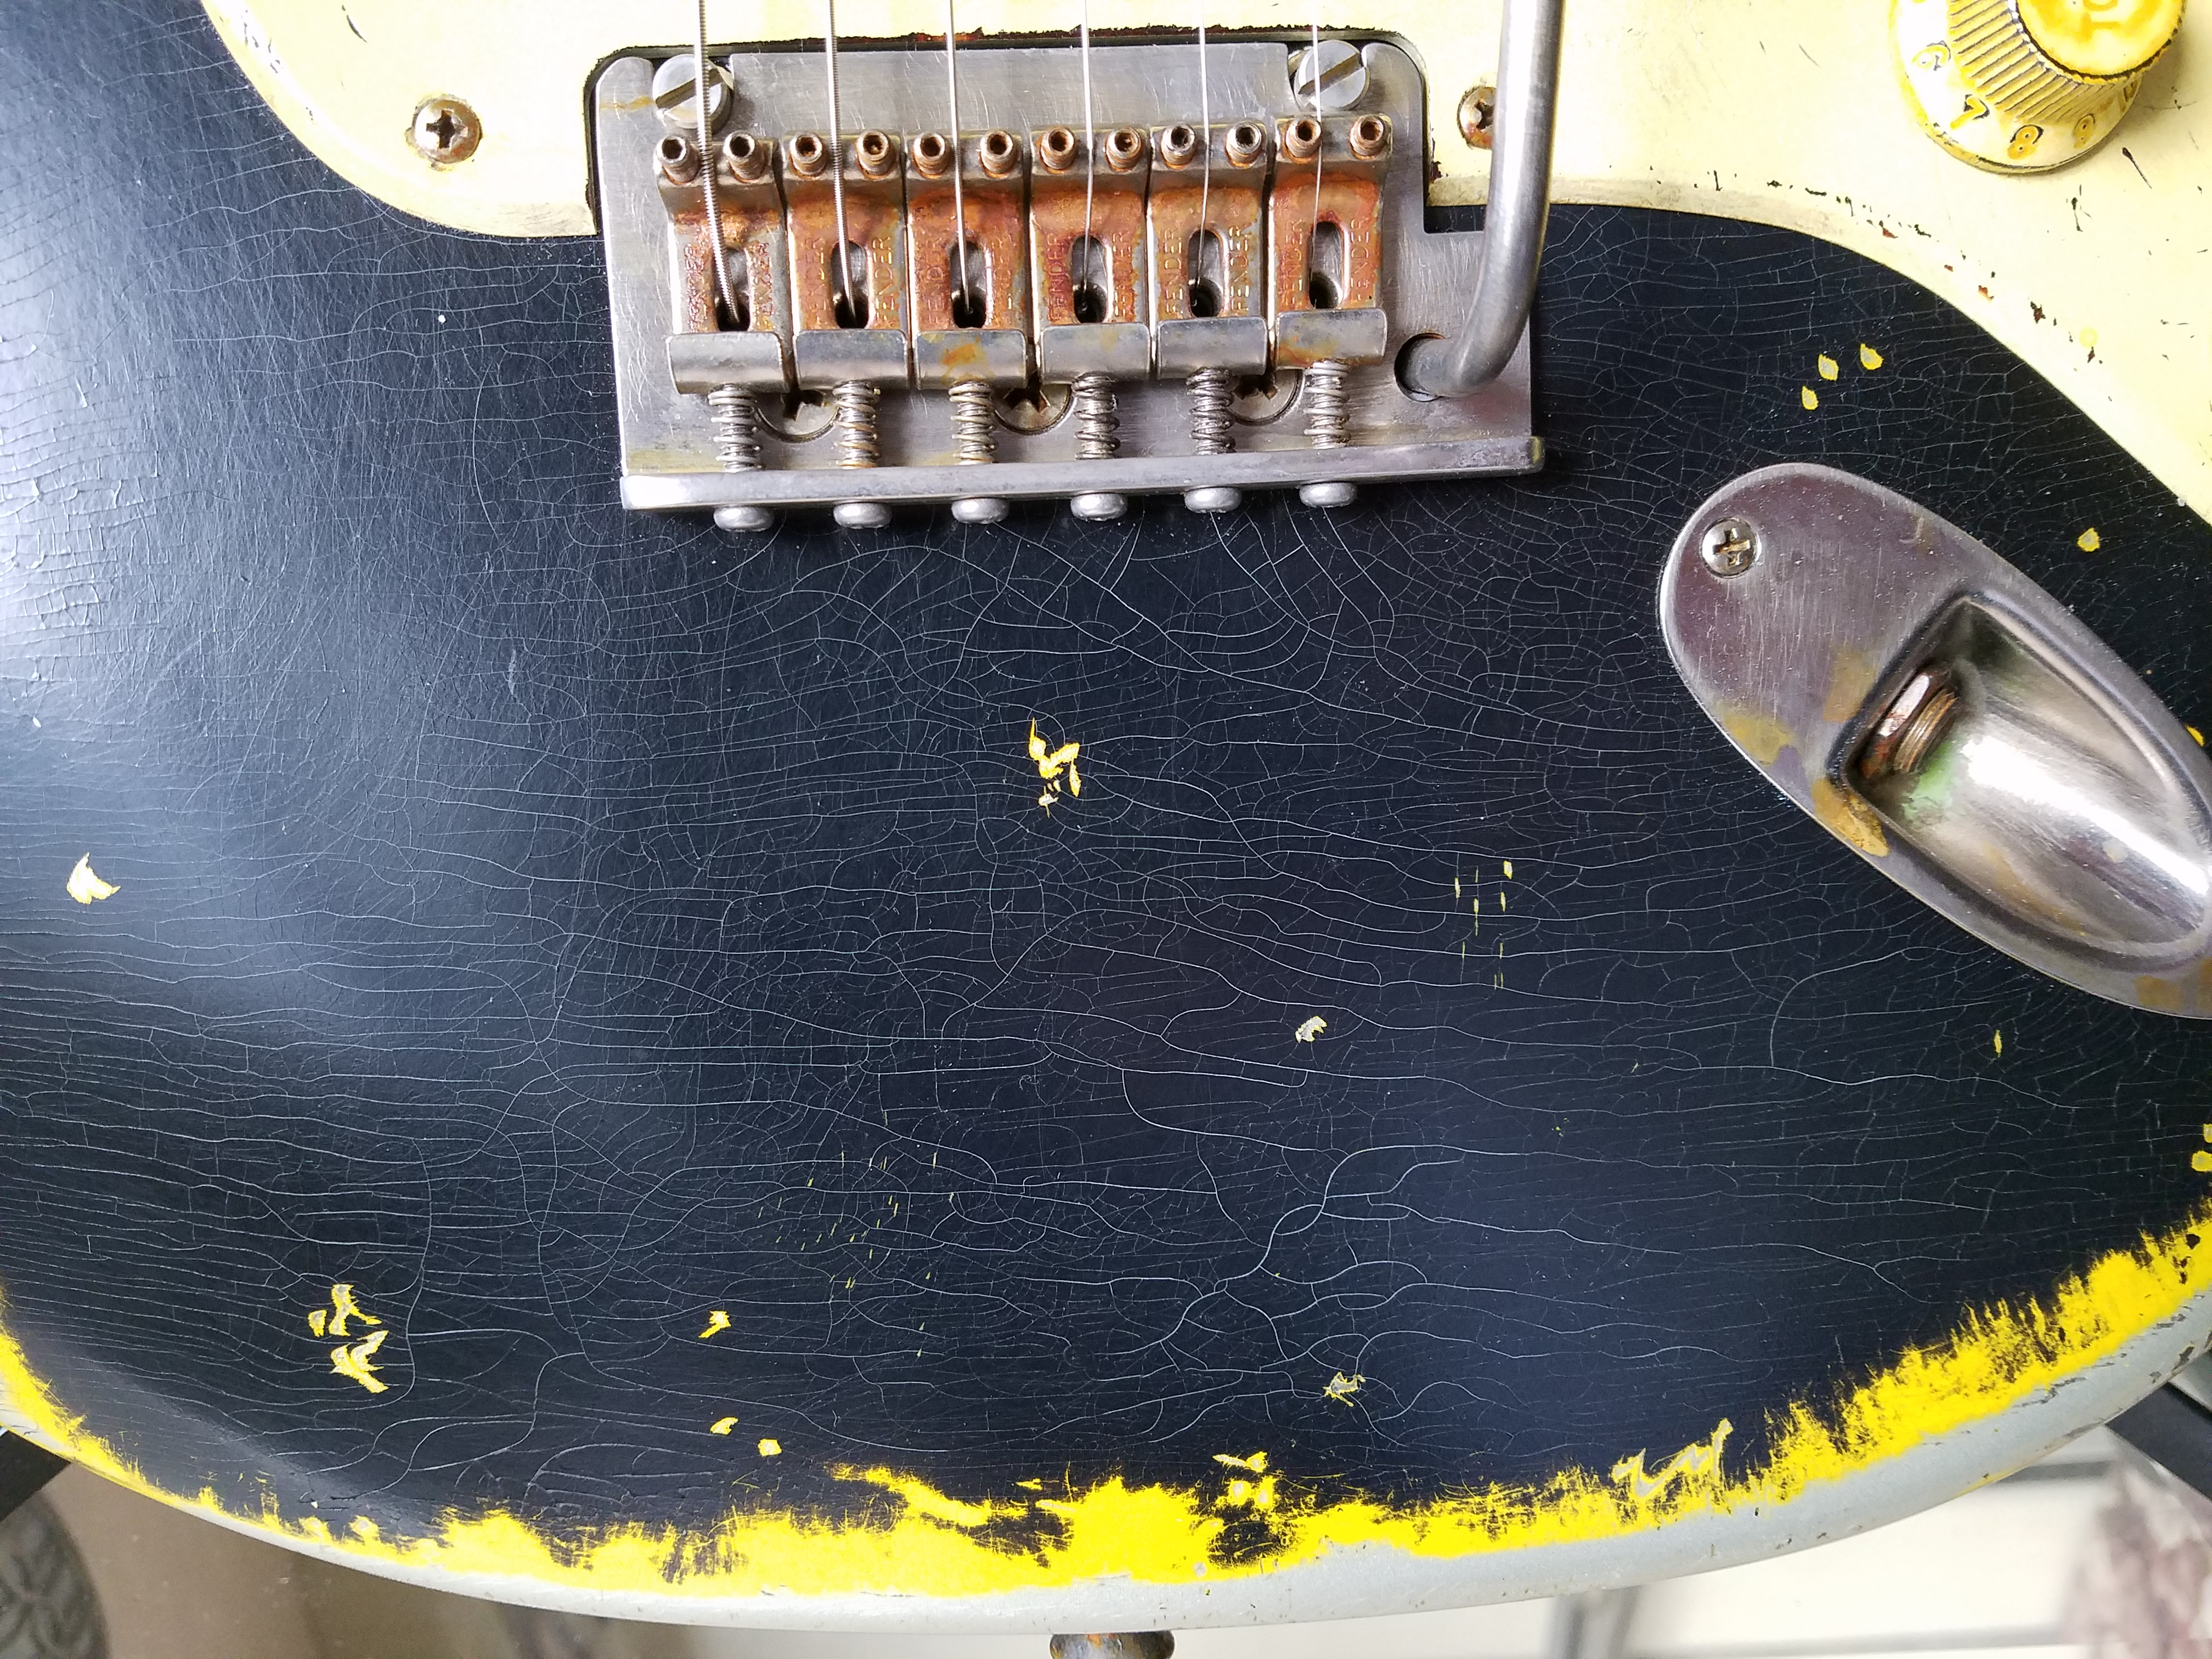 Finish Checking Fender Stratocaster Heavy Relic Guitarwacky.com